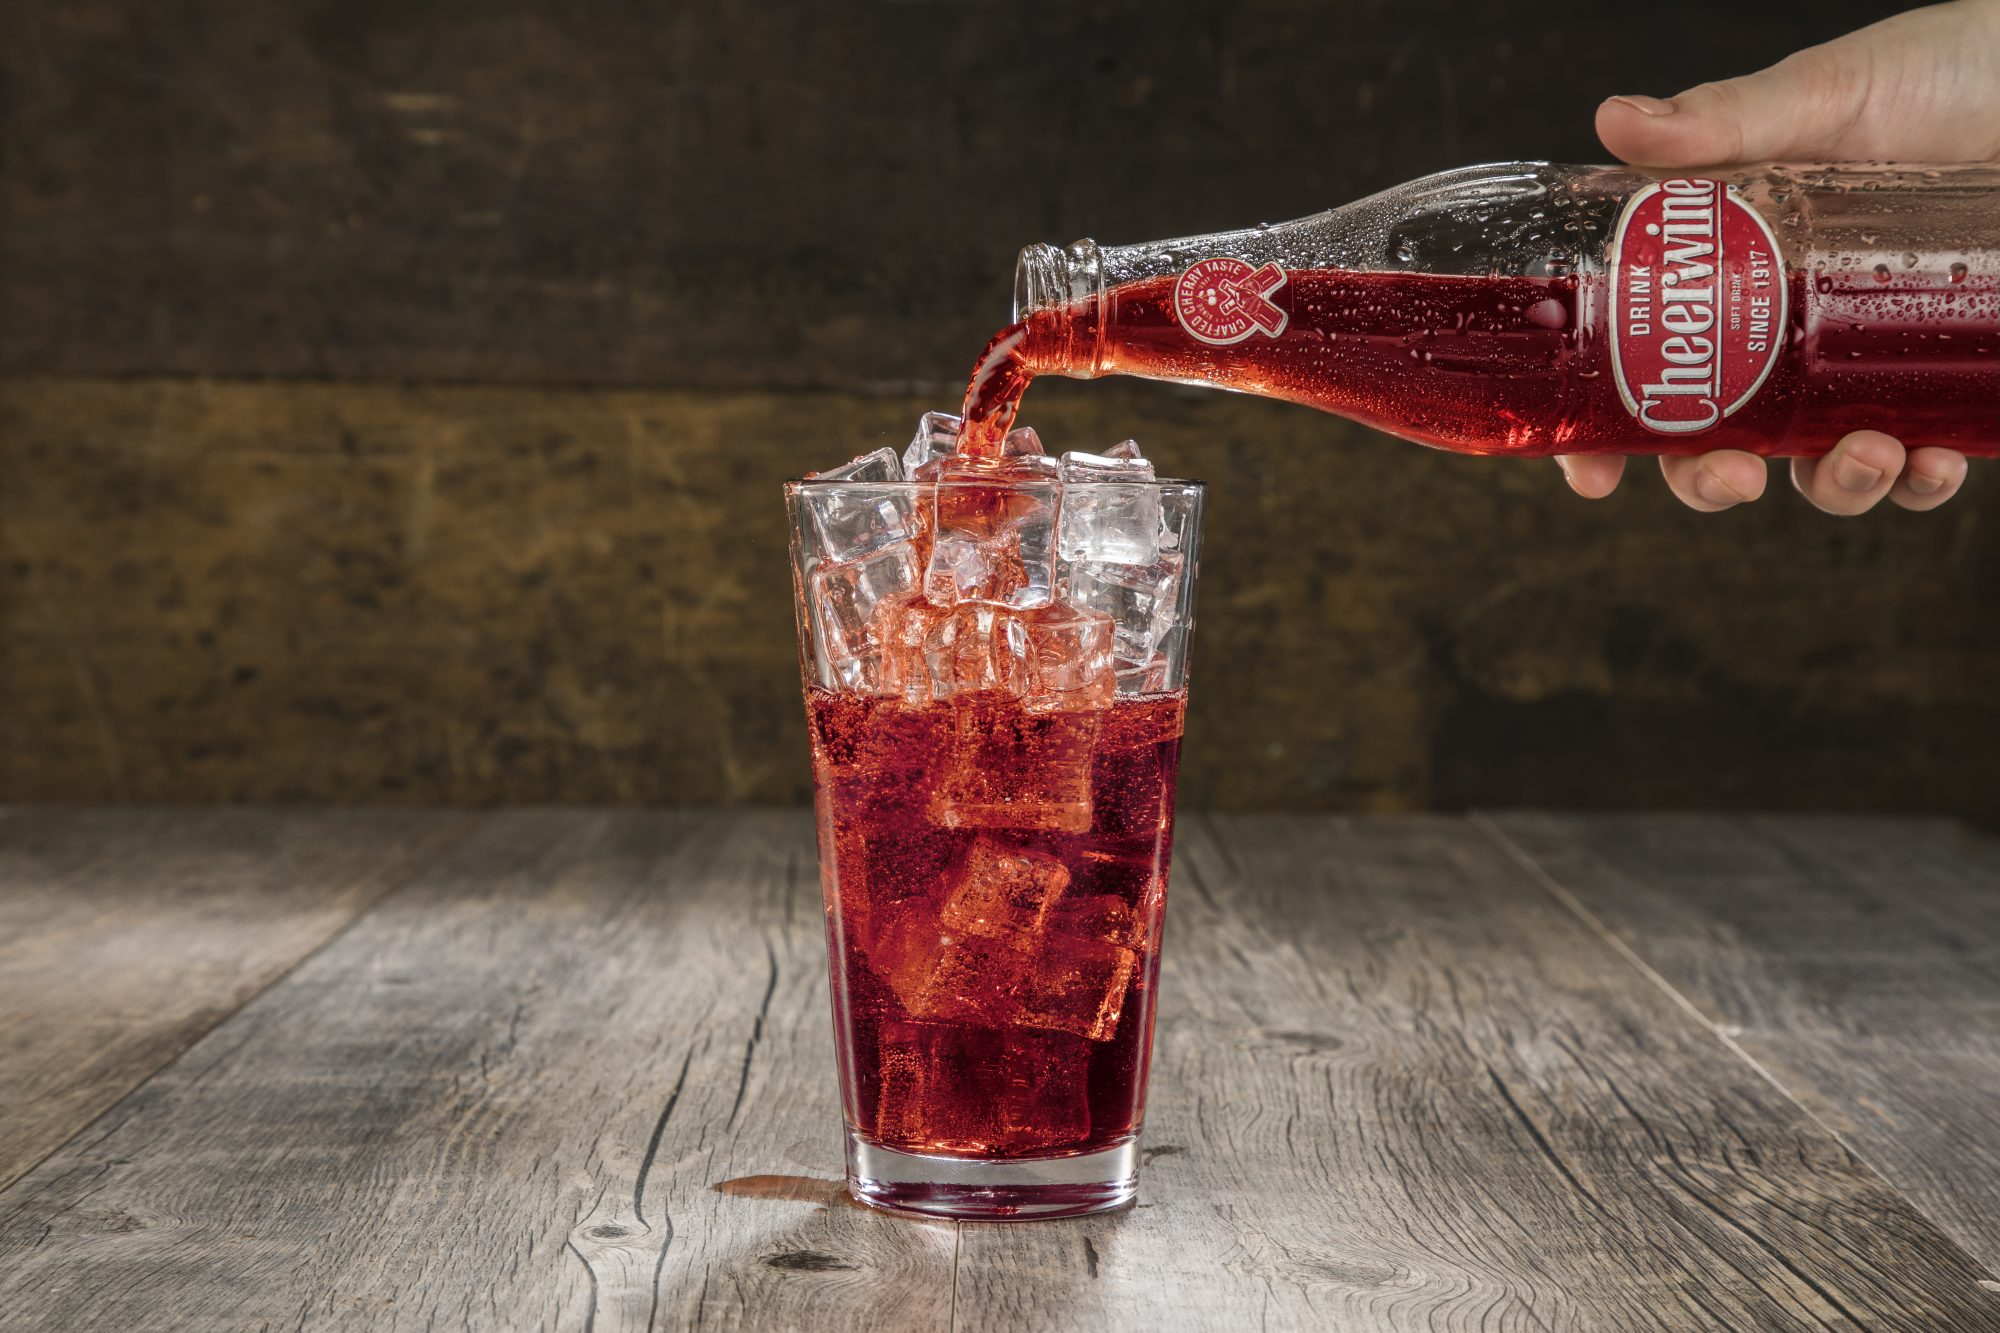 Cheerwine Bottle Pour into Glass